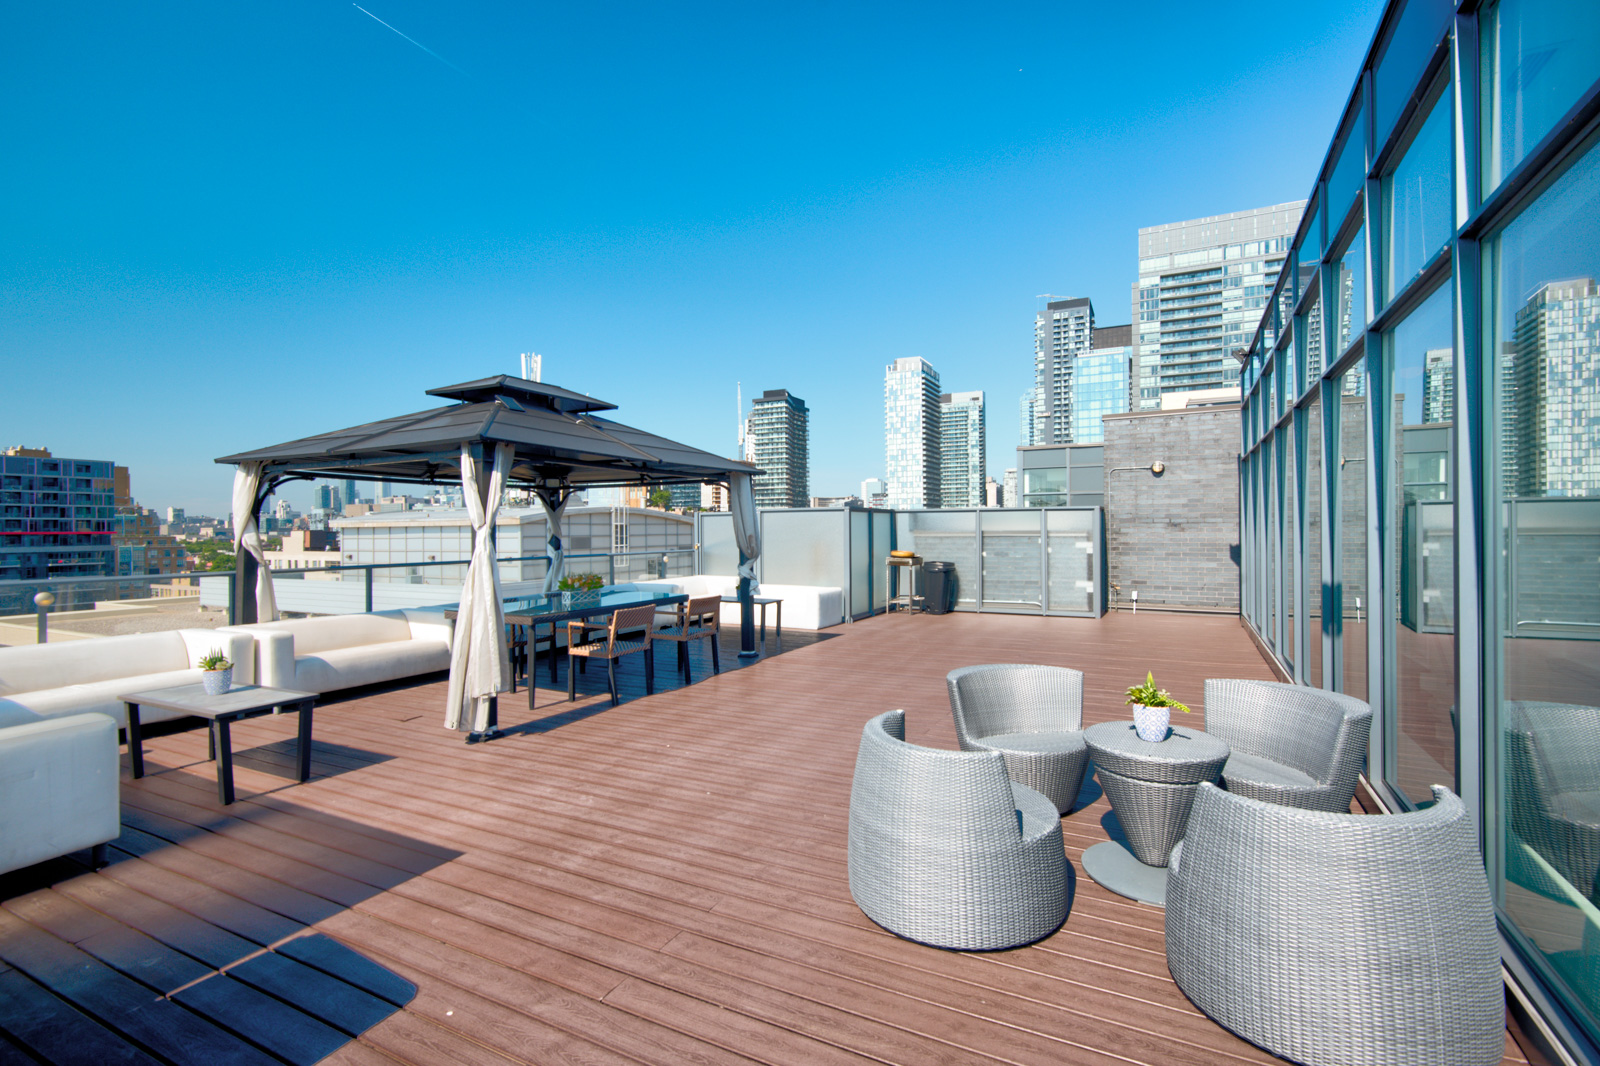 Terrace and deck with furniture - Victory Lofts Penthouse Suite in 478 King St W Toronto.